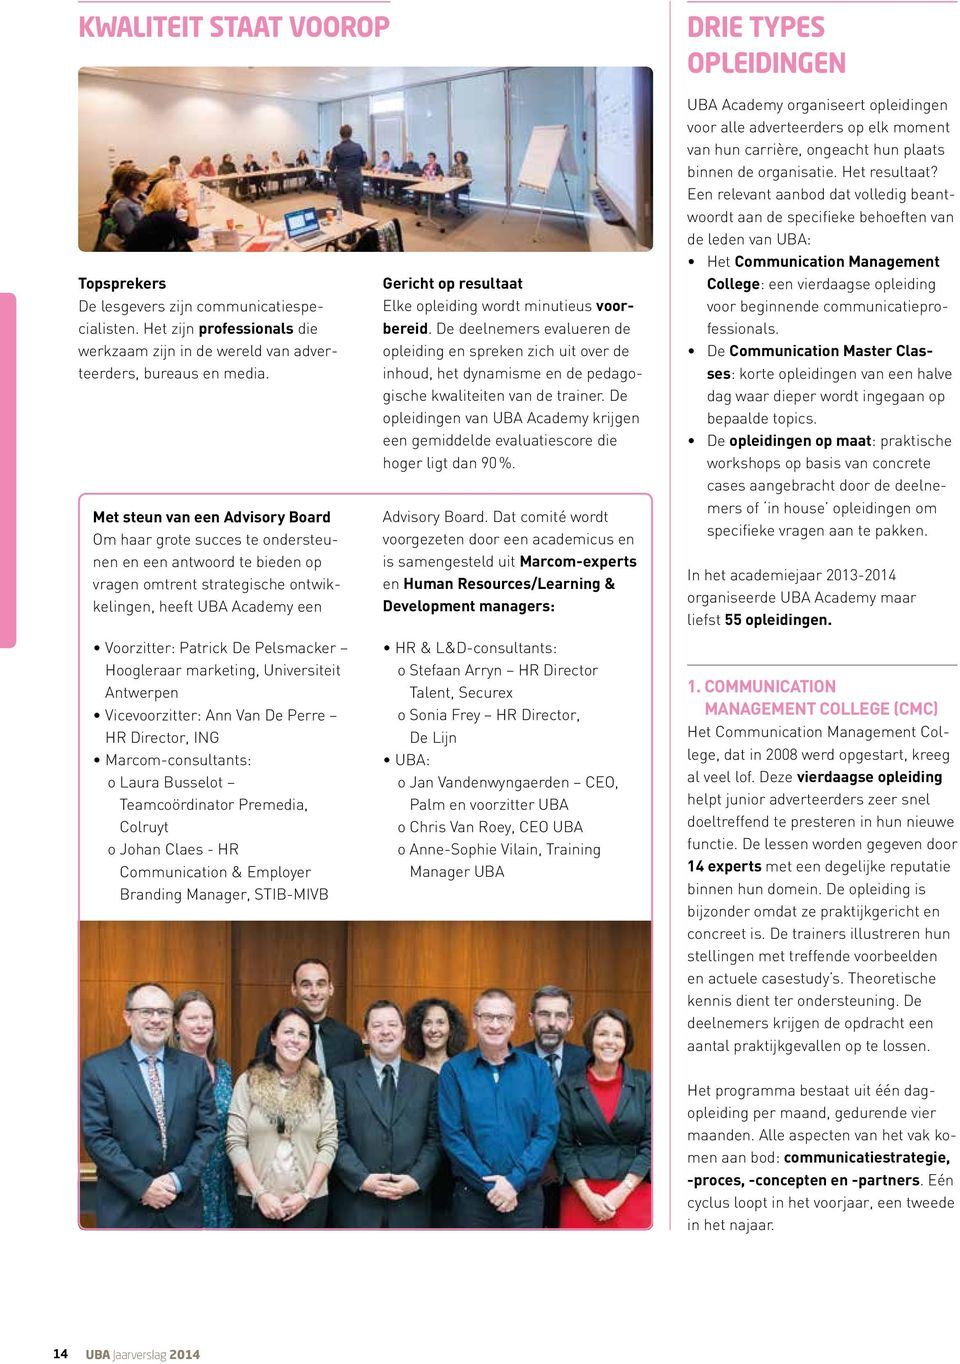 Hoogleraar marketing, Universiteit Antwerpen Vicevoorzitter: Ann Van De Perre HR Director, ING Marcom-consultants: o Laura Busselot Teamcoördinator Premedia, Colruyt o Johan Claes - HR Communication